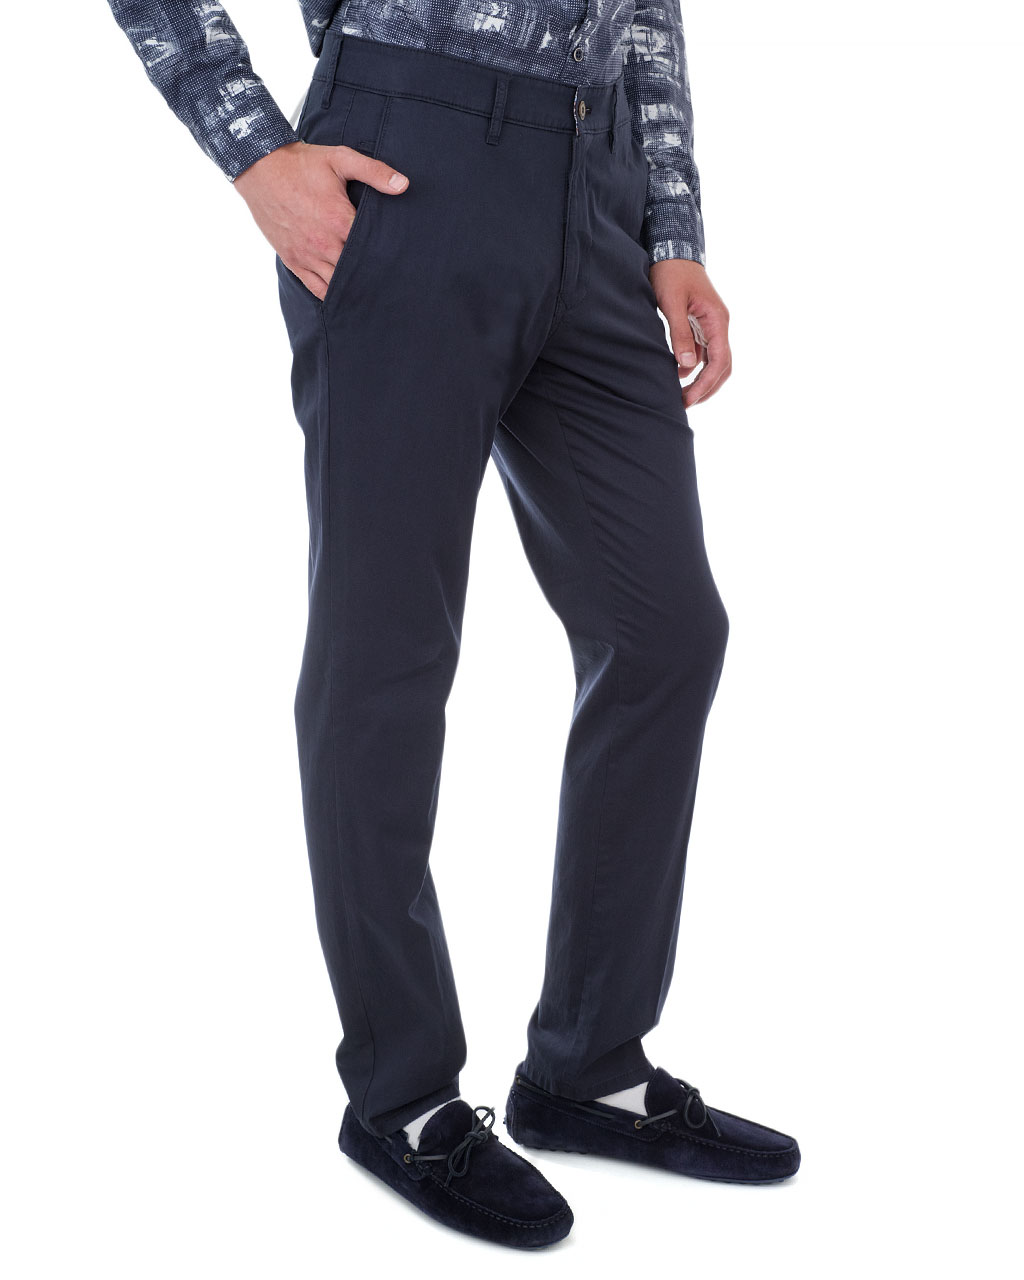 Men's trousers BENNY-8-410941-68/92 (4)